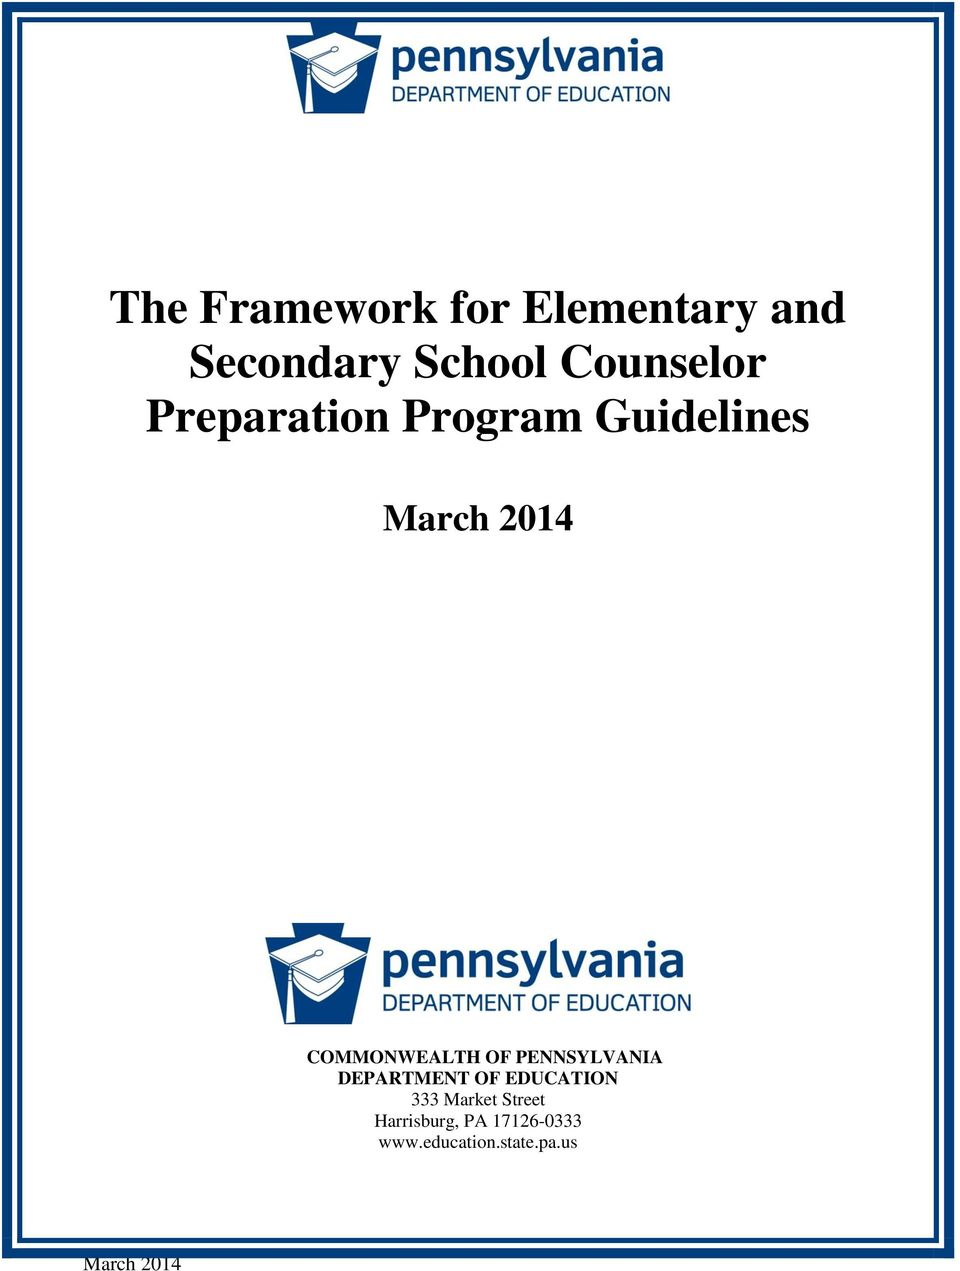 COMMONWEALTH OF PENNSYLVANIA DEPARTMENT OF EDUCATION 333